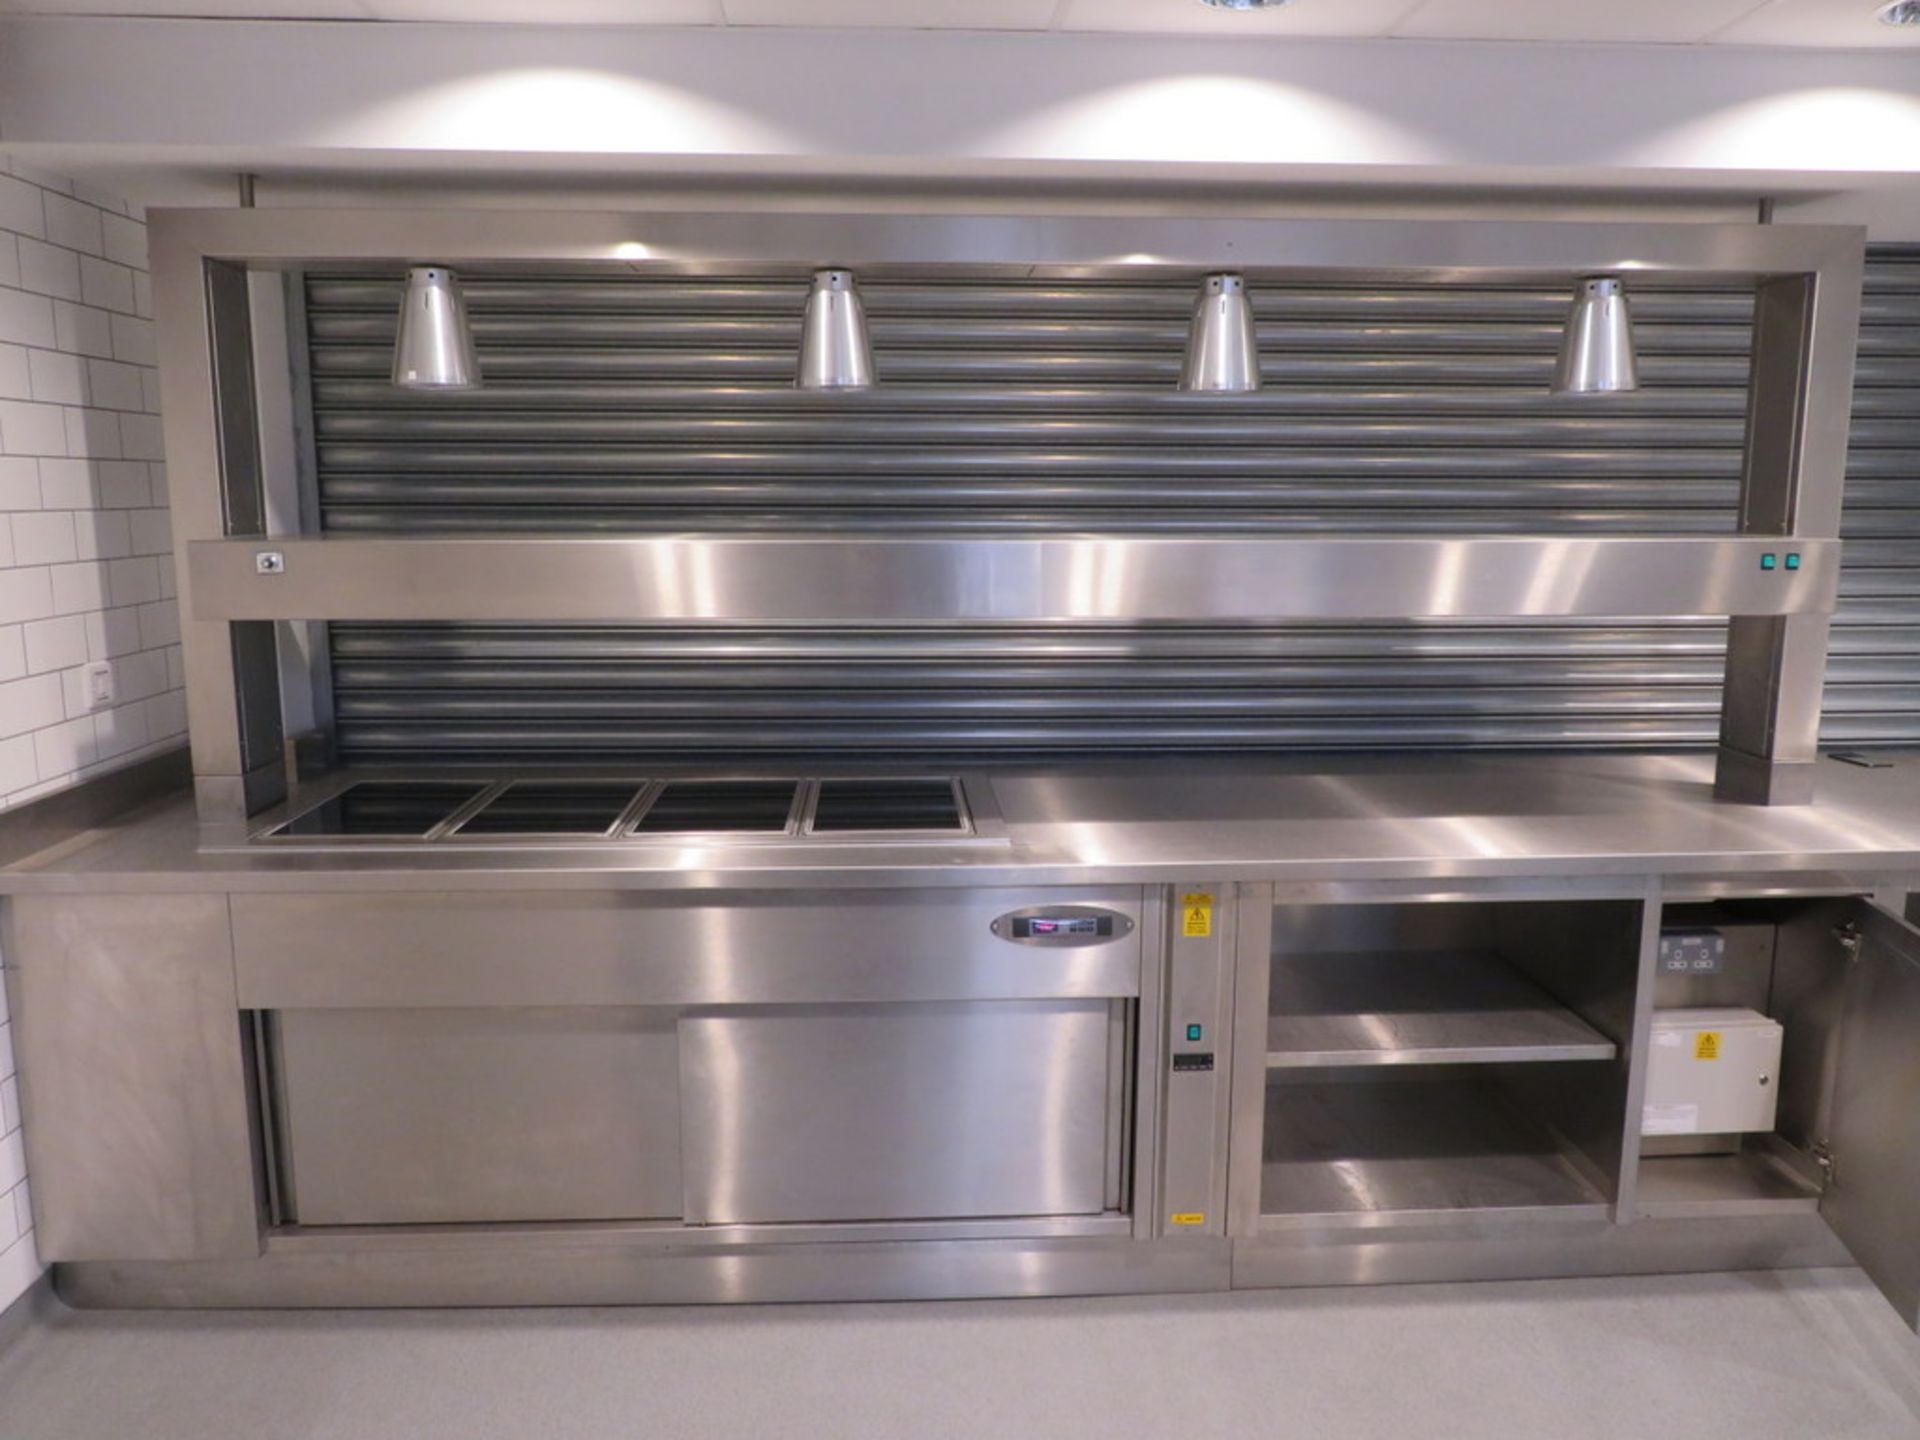 Lot 11 - BUILT IN STAINLESS STEEL HOT FOOD COUNTER WITH TWIN SERVERIES